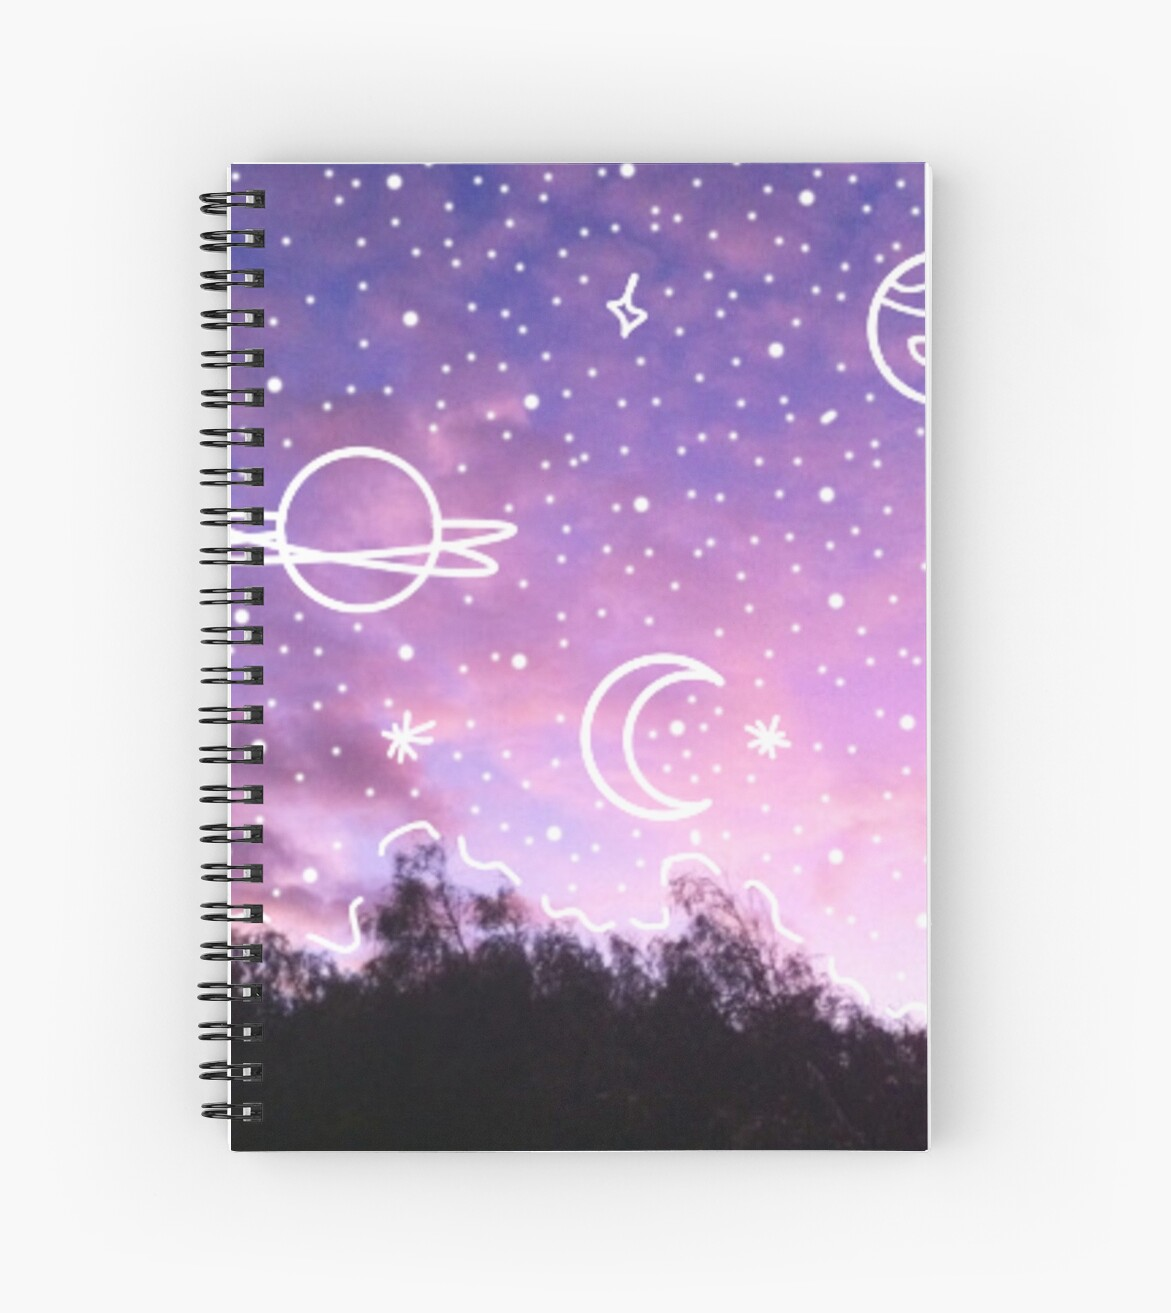 aesthetic tumblr sunset galaxy doodle spiral notebooks by lucie